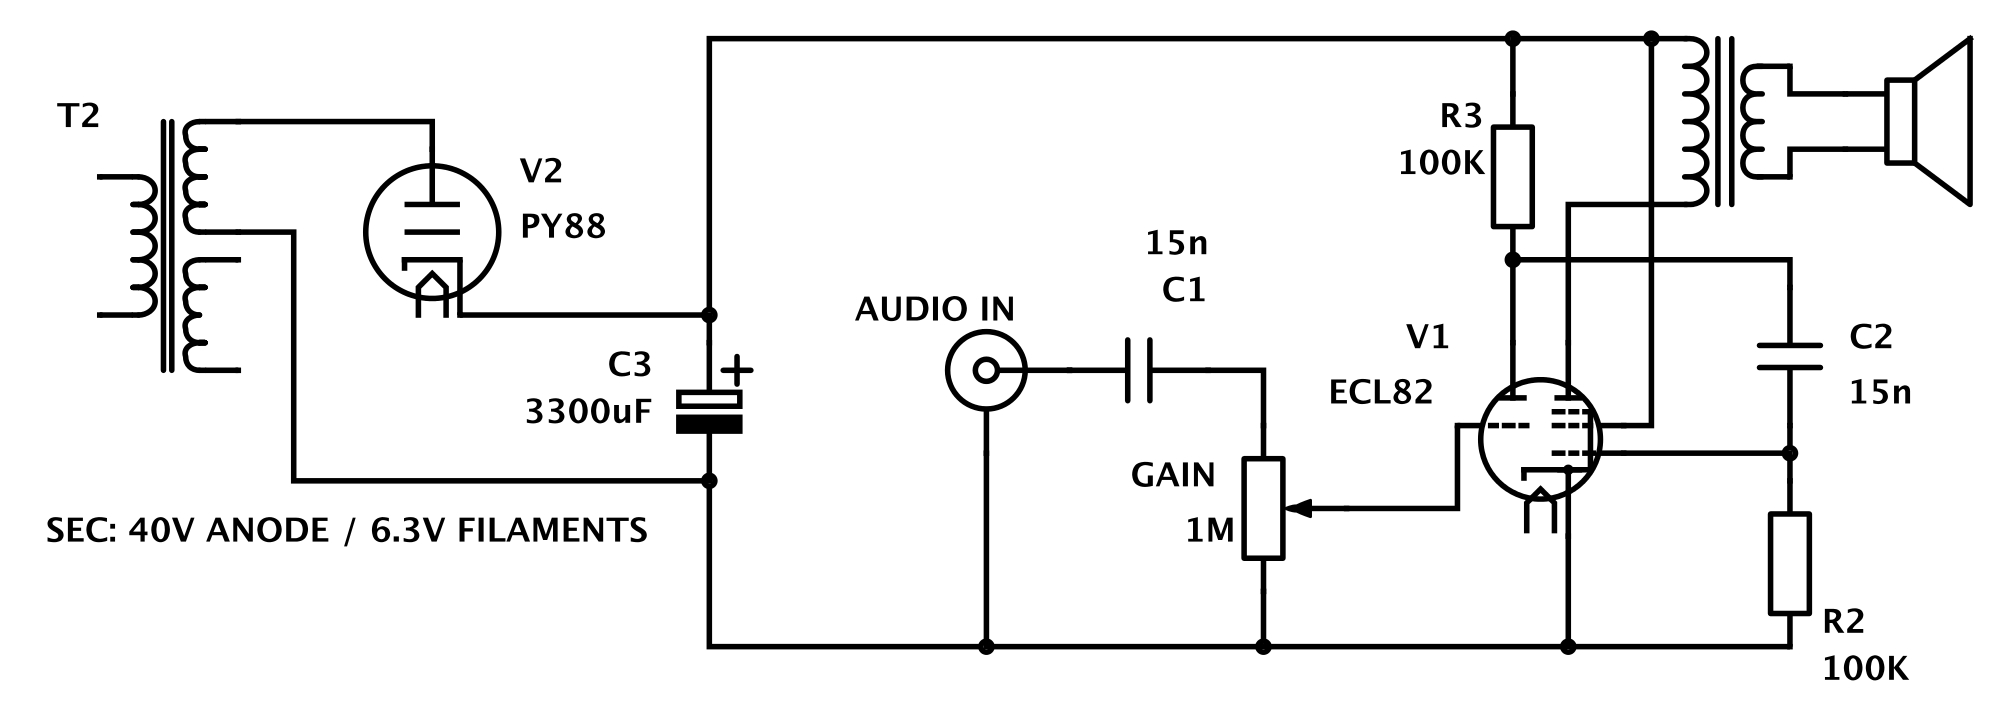 Low Voltage Tube Amp Is Great For Beginners Hackaday Wiring Diagram Fiber Optic Free Download Schematic